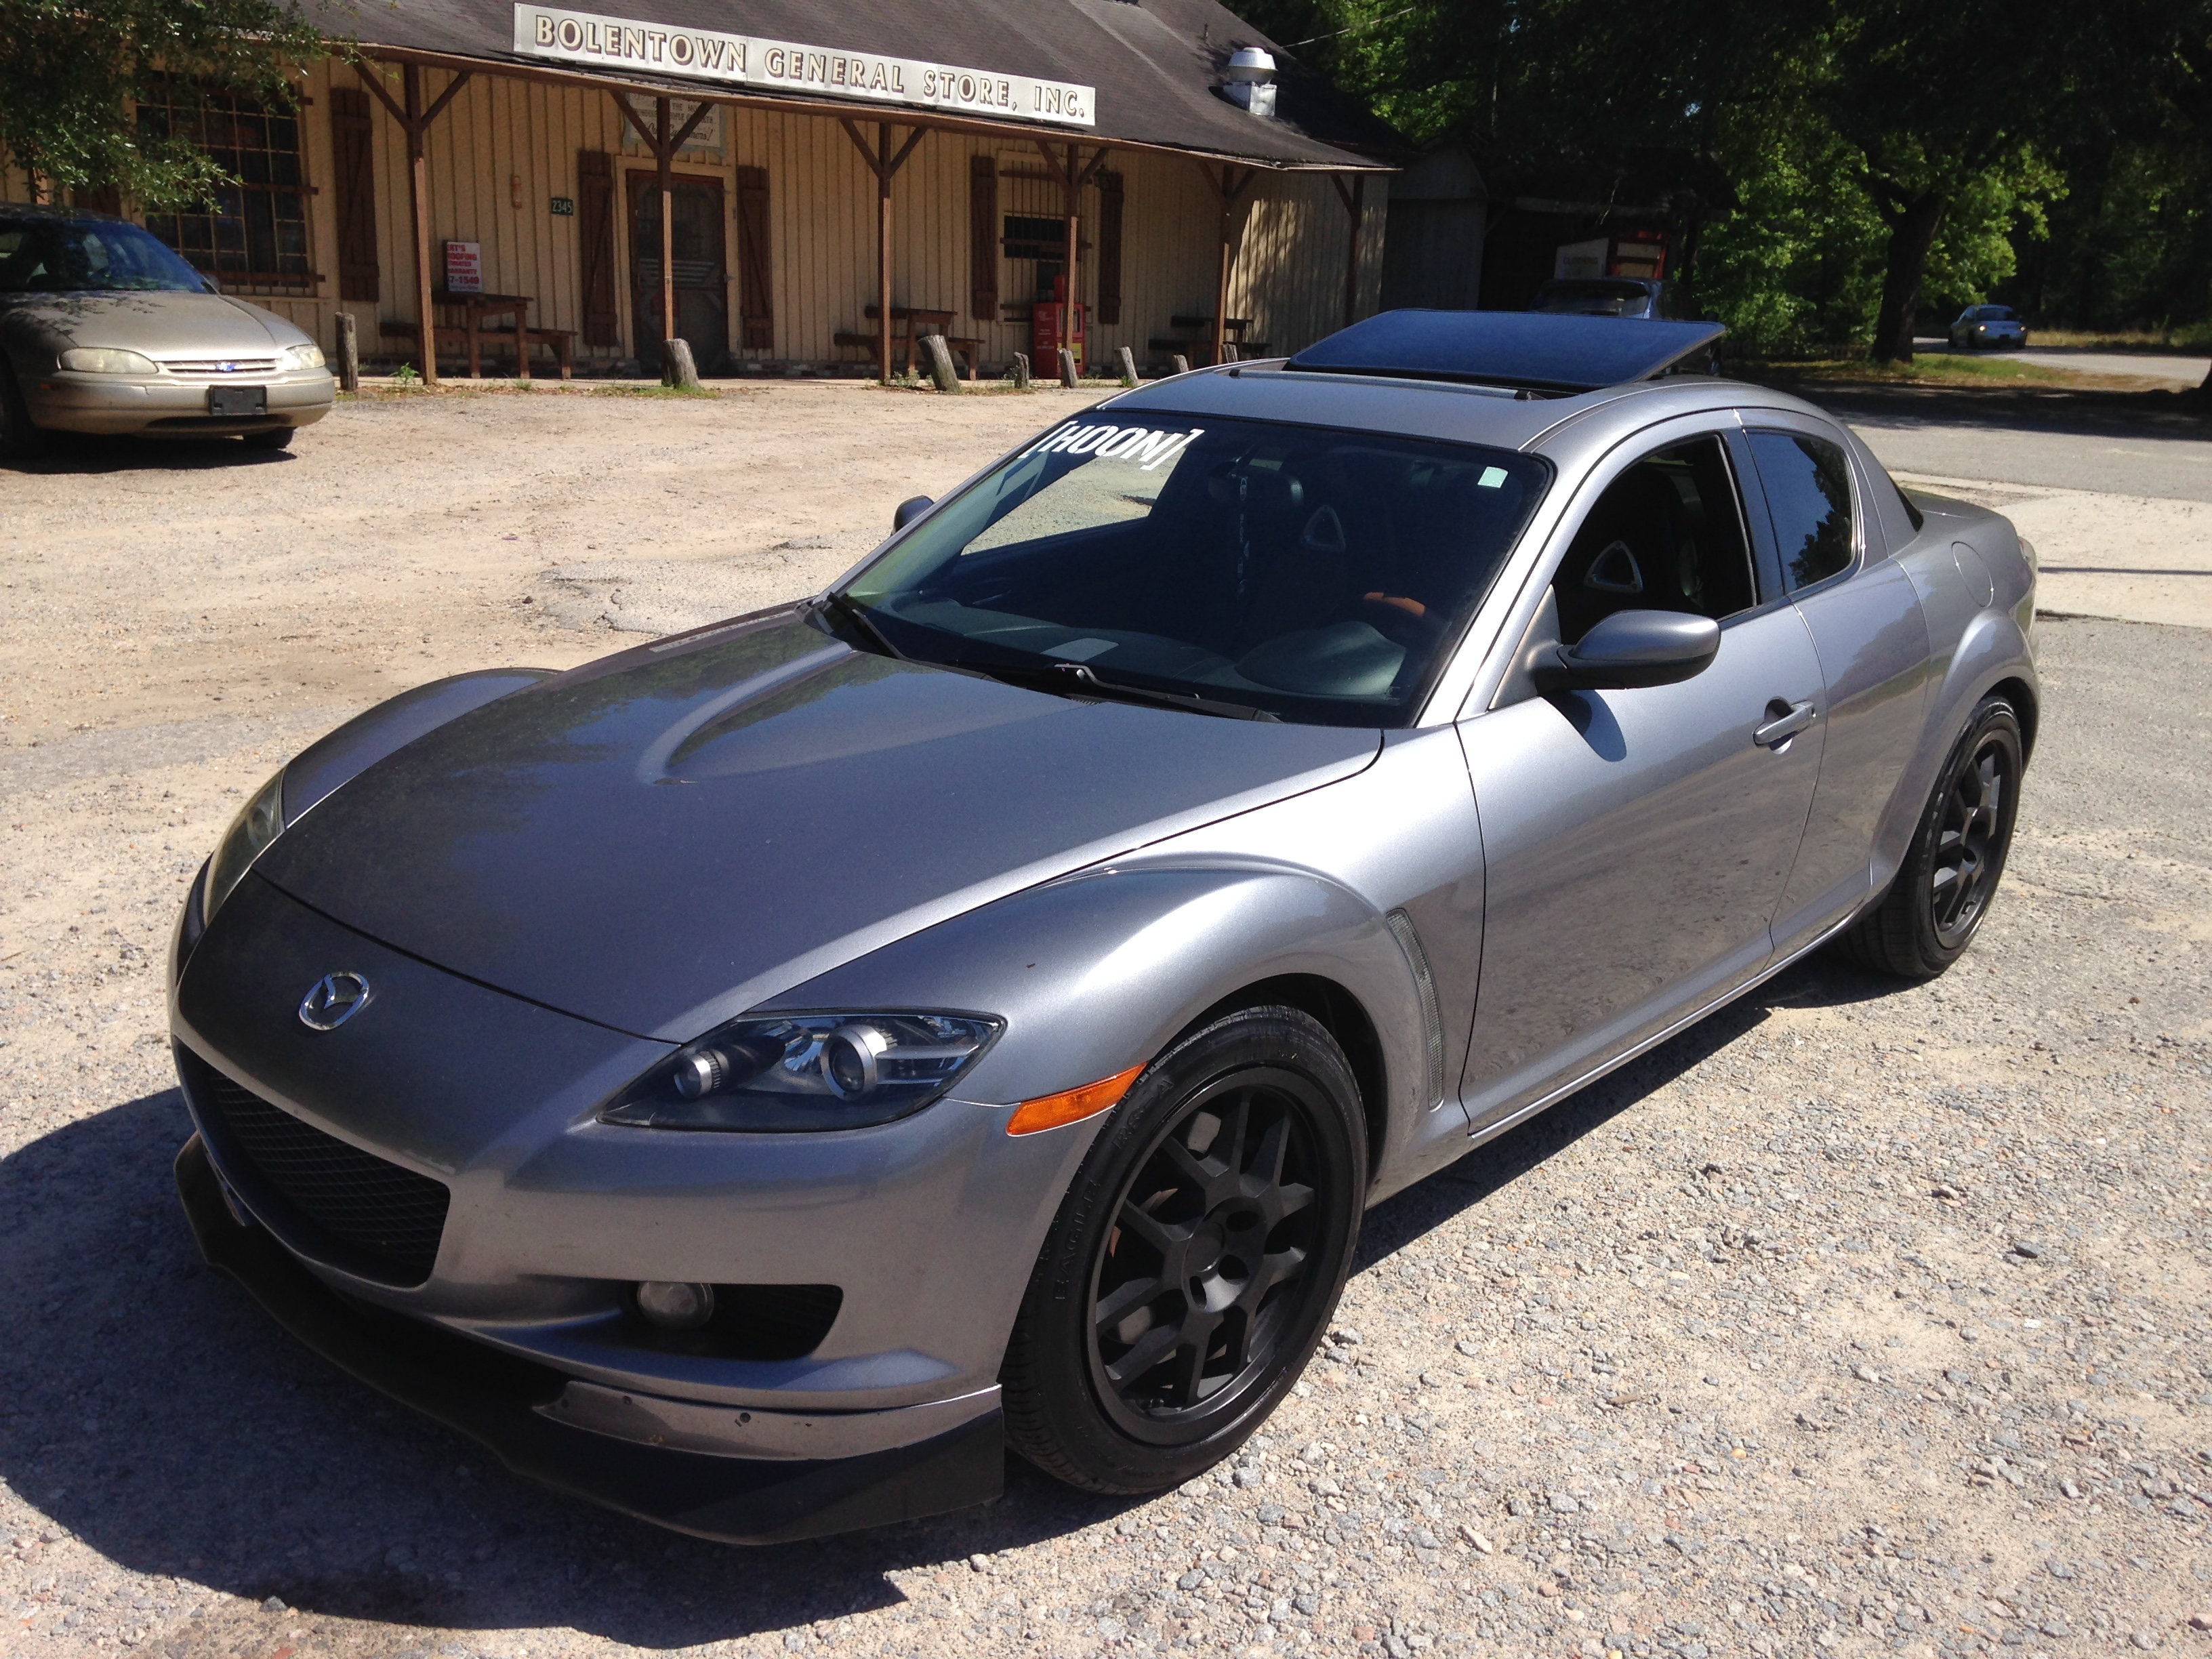 mazda rx8. winning blue and velocity red are nice but that titanium grey ii metallic tho mazda rx8 x